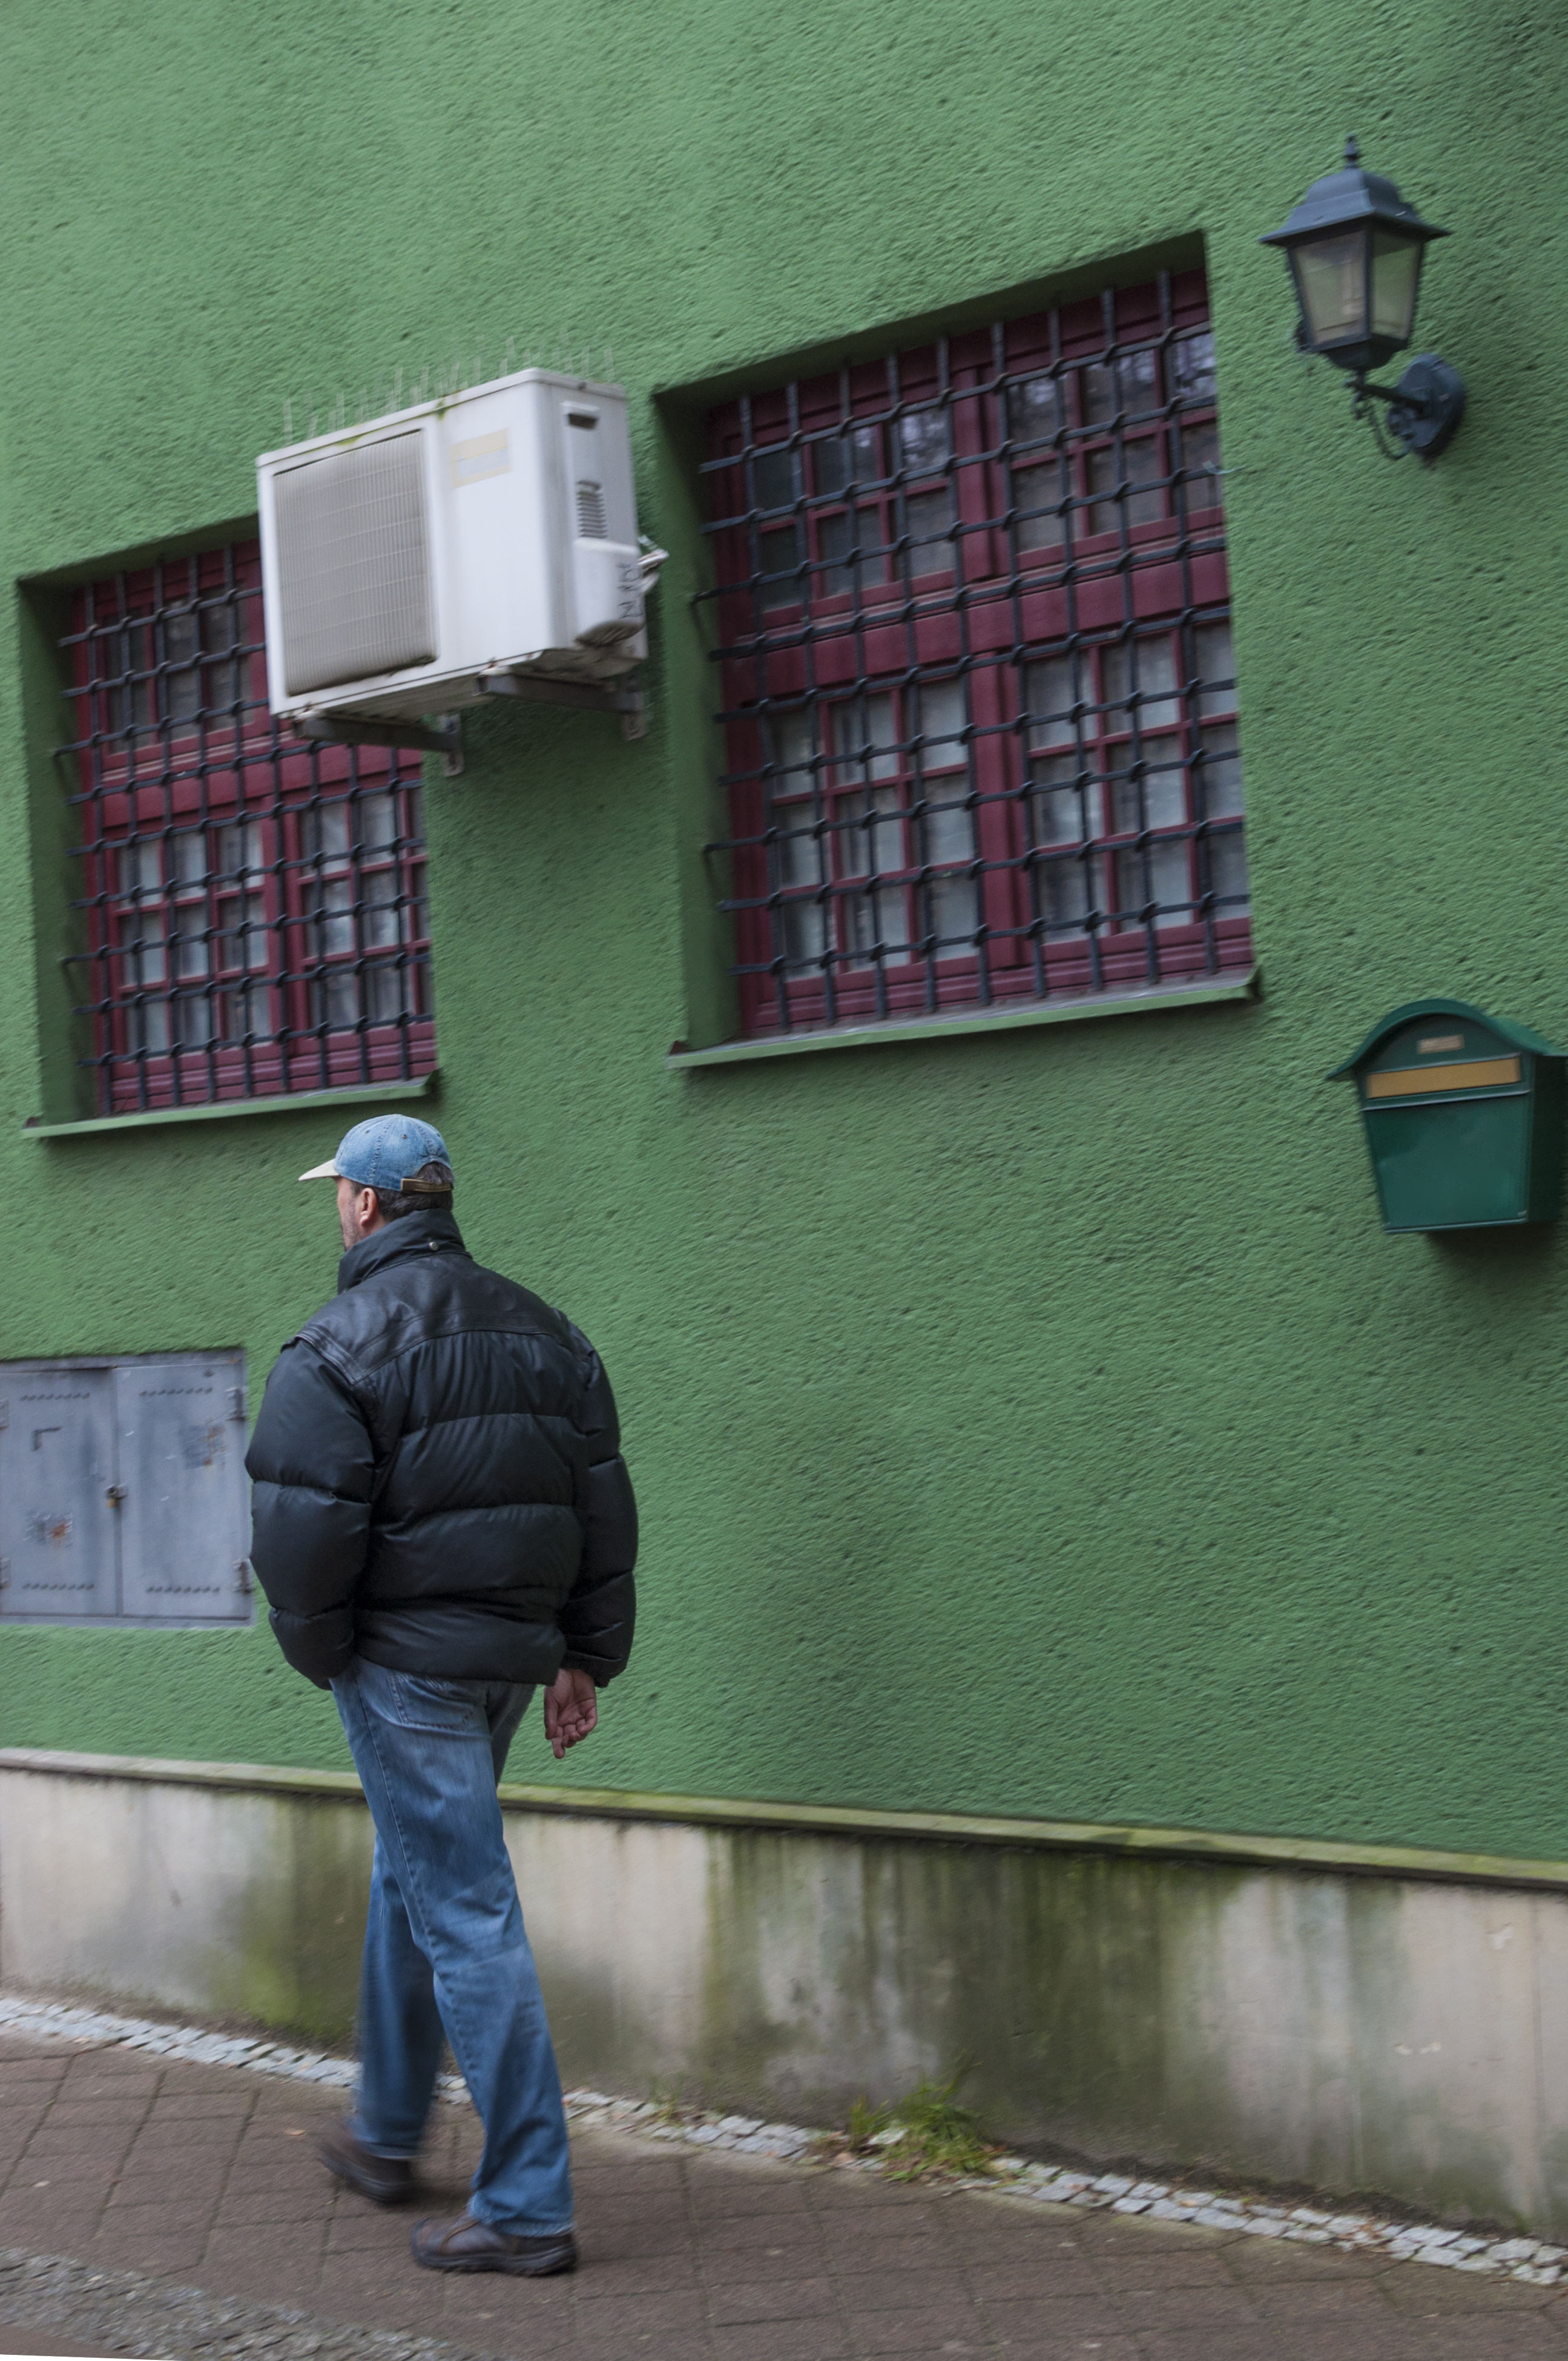 full length, real people, one person, casual clothing, rear view, lifestyles, standing, day, architecture, one man only, radiator, adults only, outdoors, people, adult